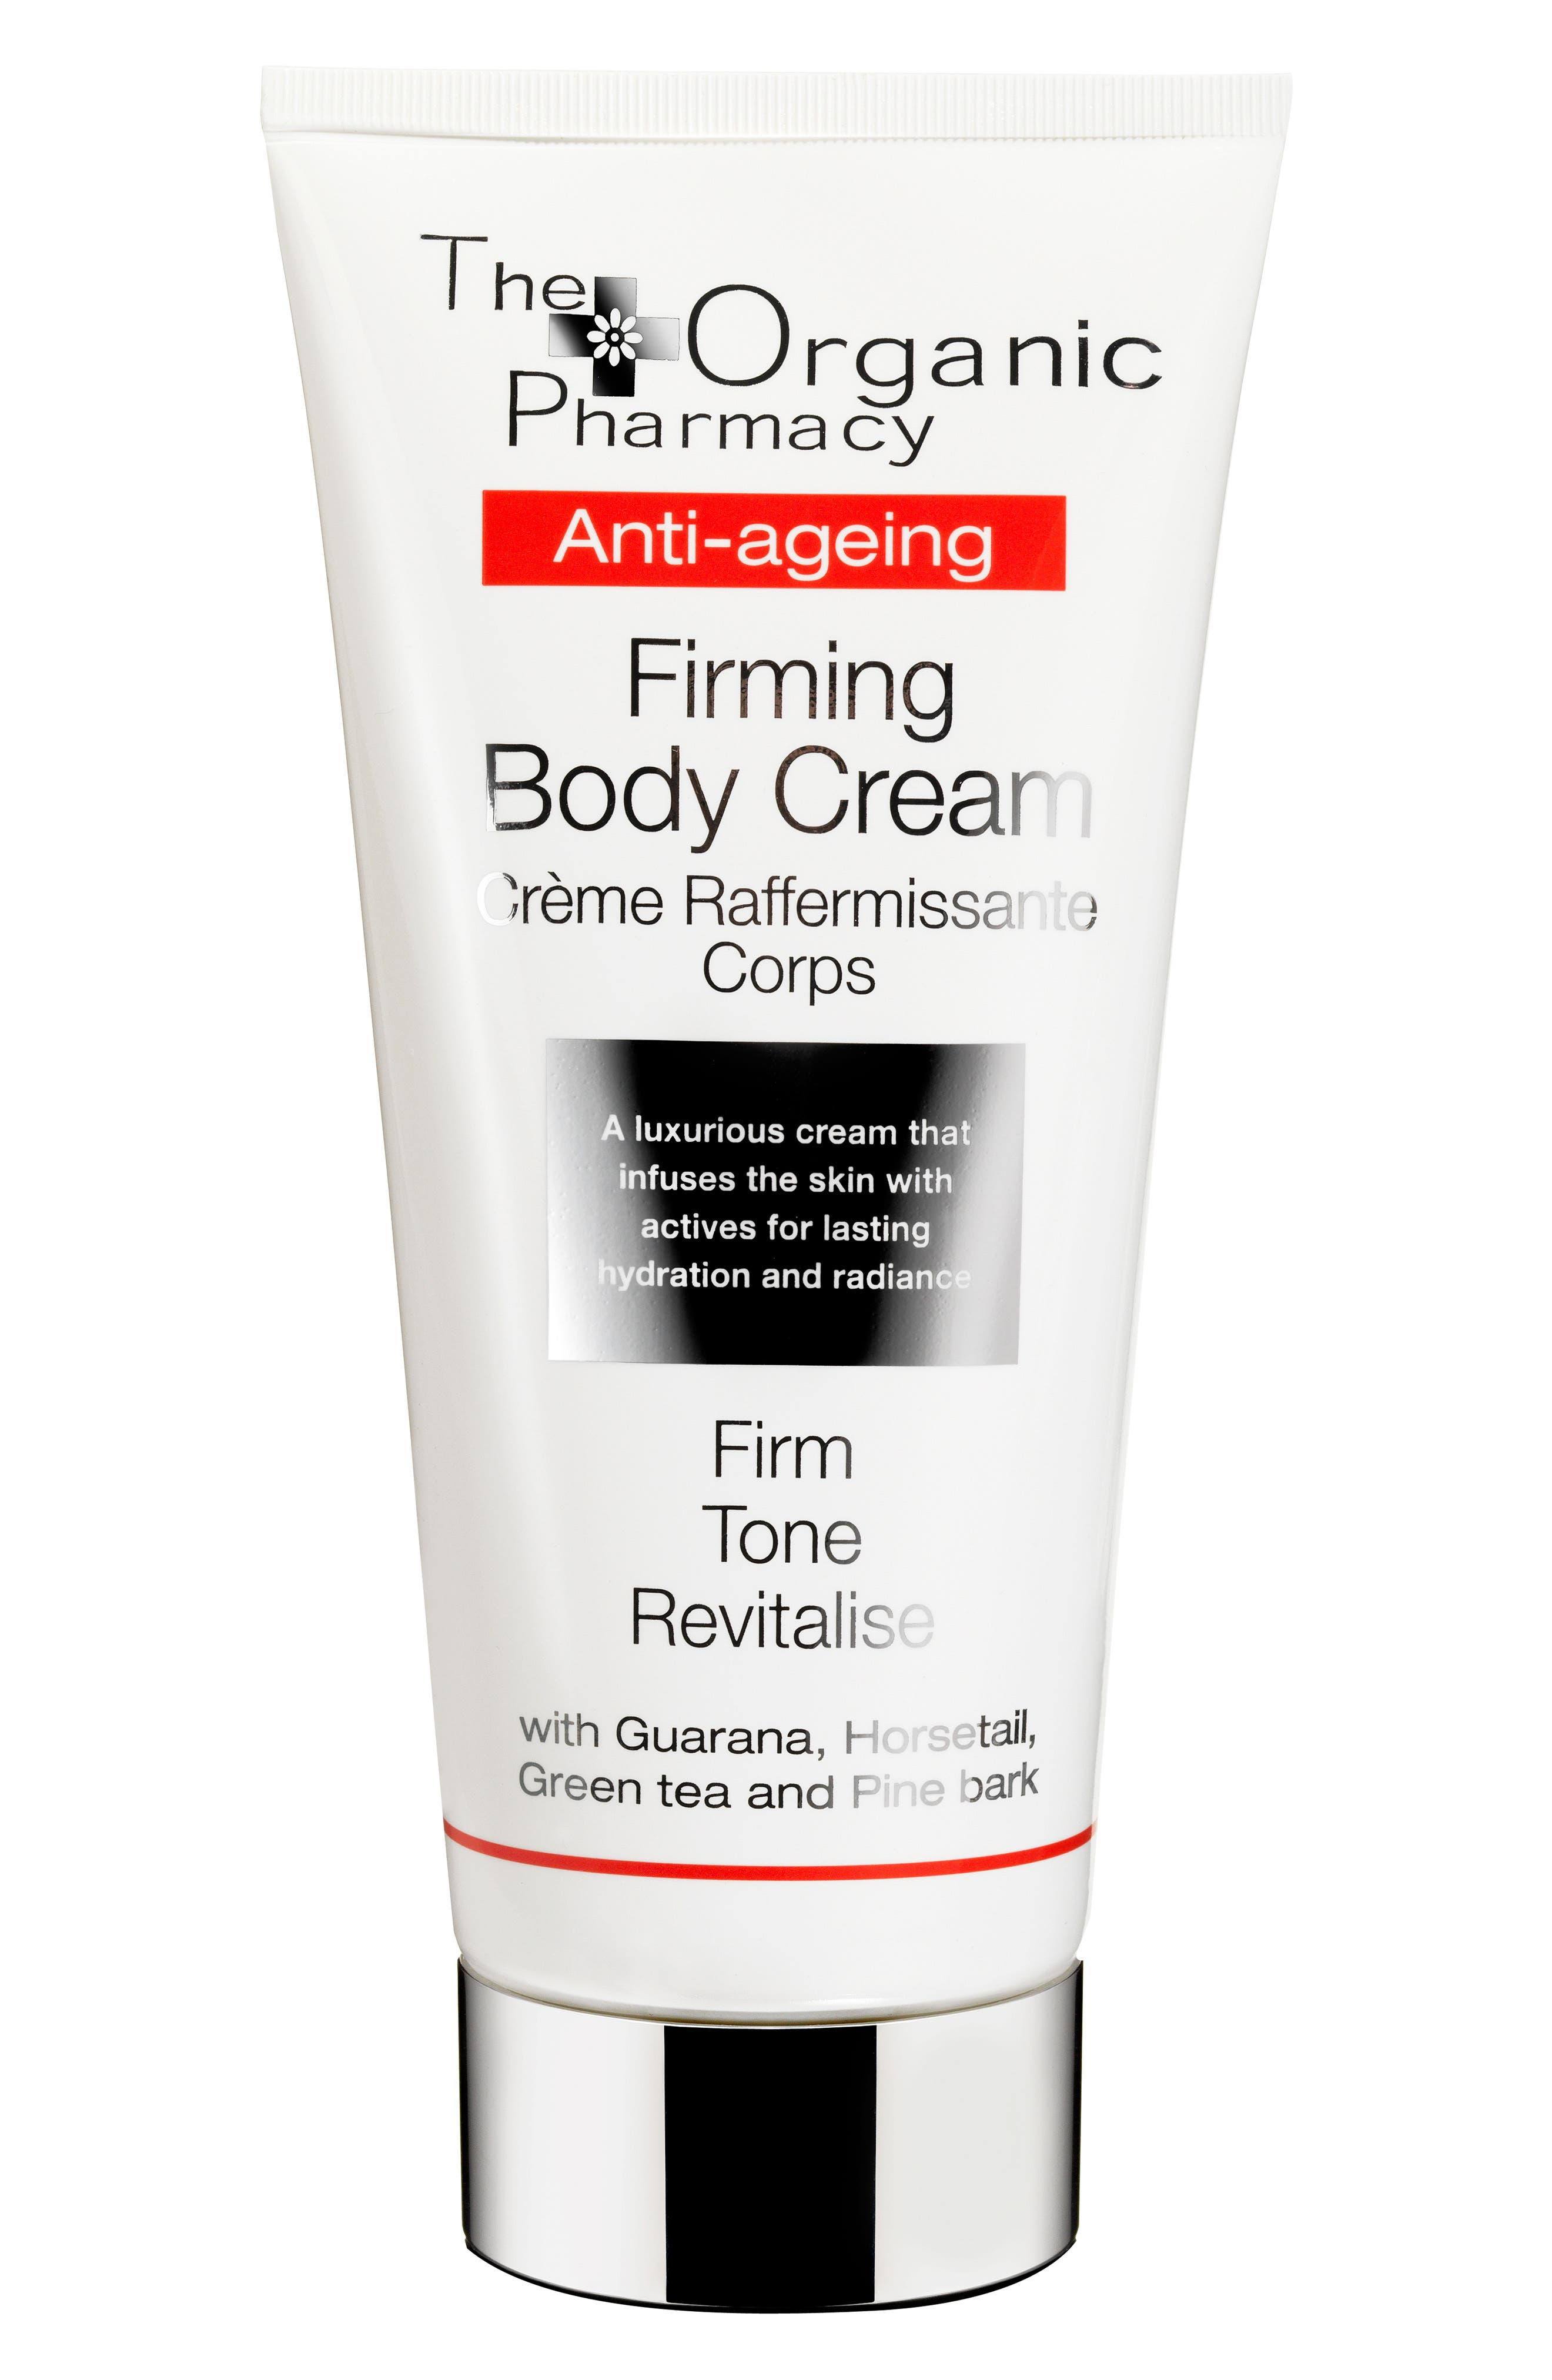 Alternate Image 1 Selected - The Organic Pharmacy Anti-Aging Firming Body Cream